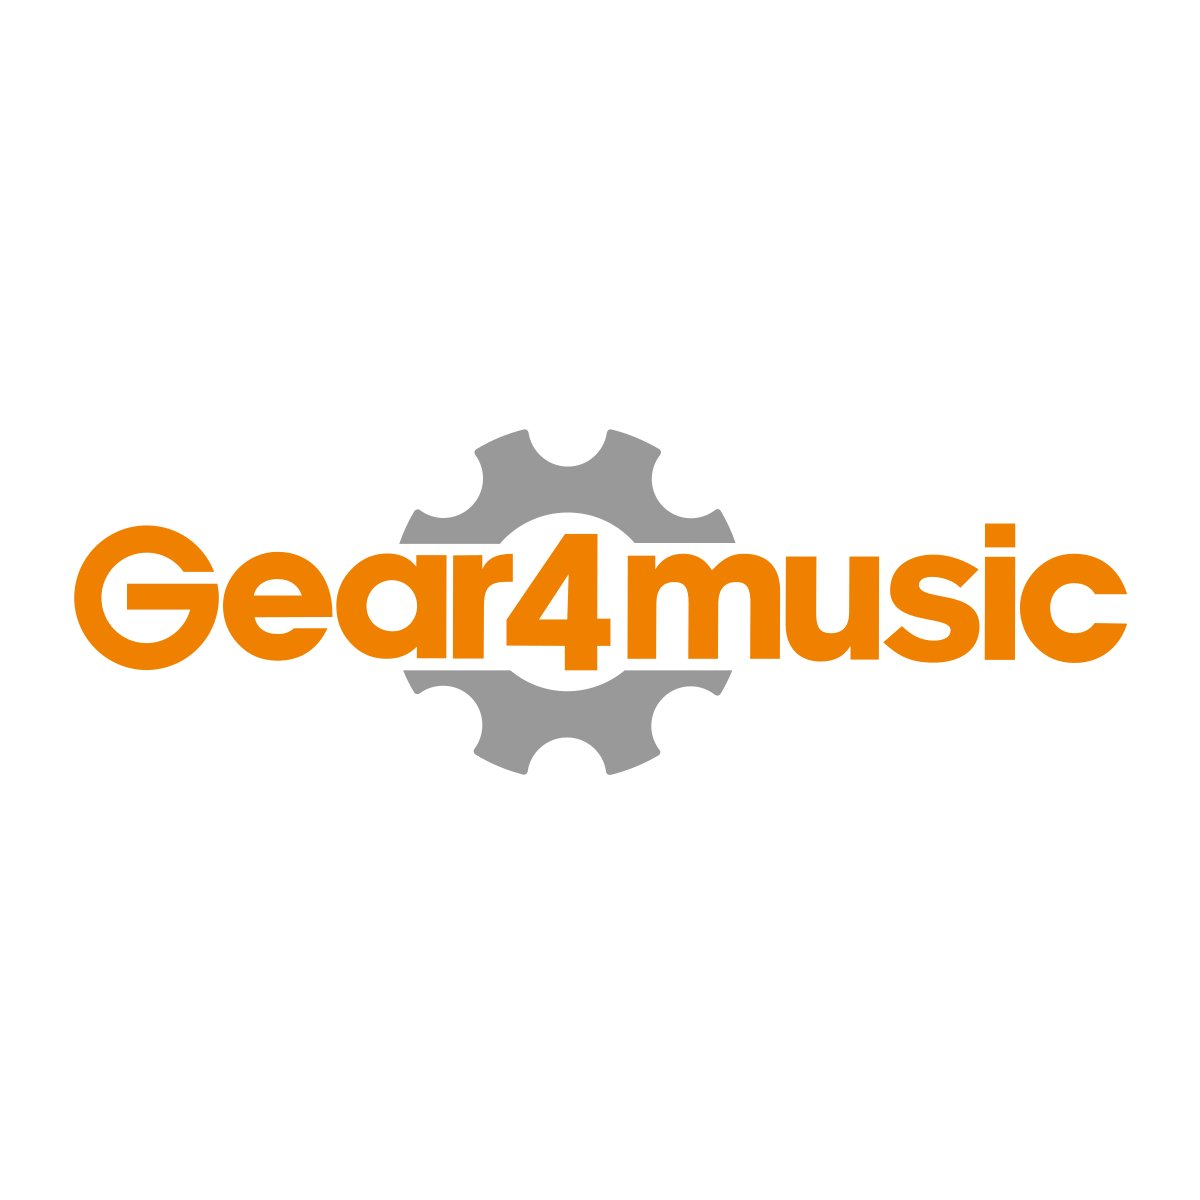 Coppergate Alttopasuuna, Gear4music